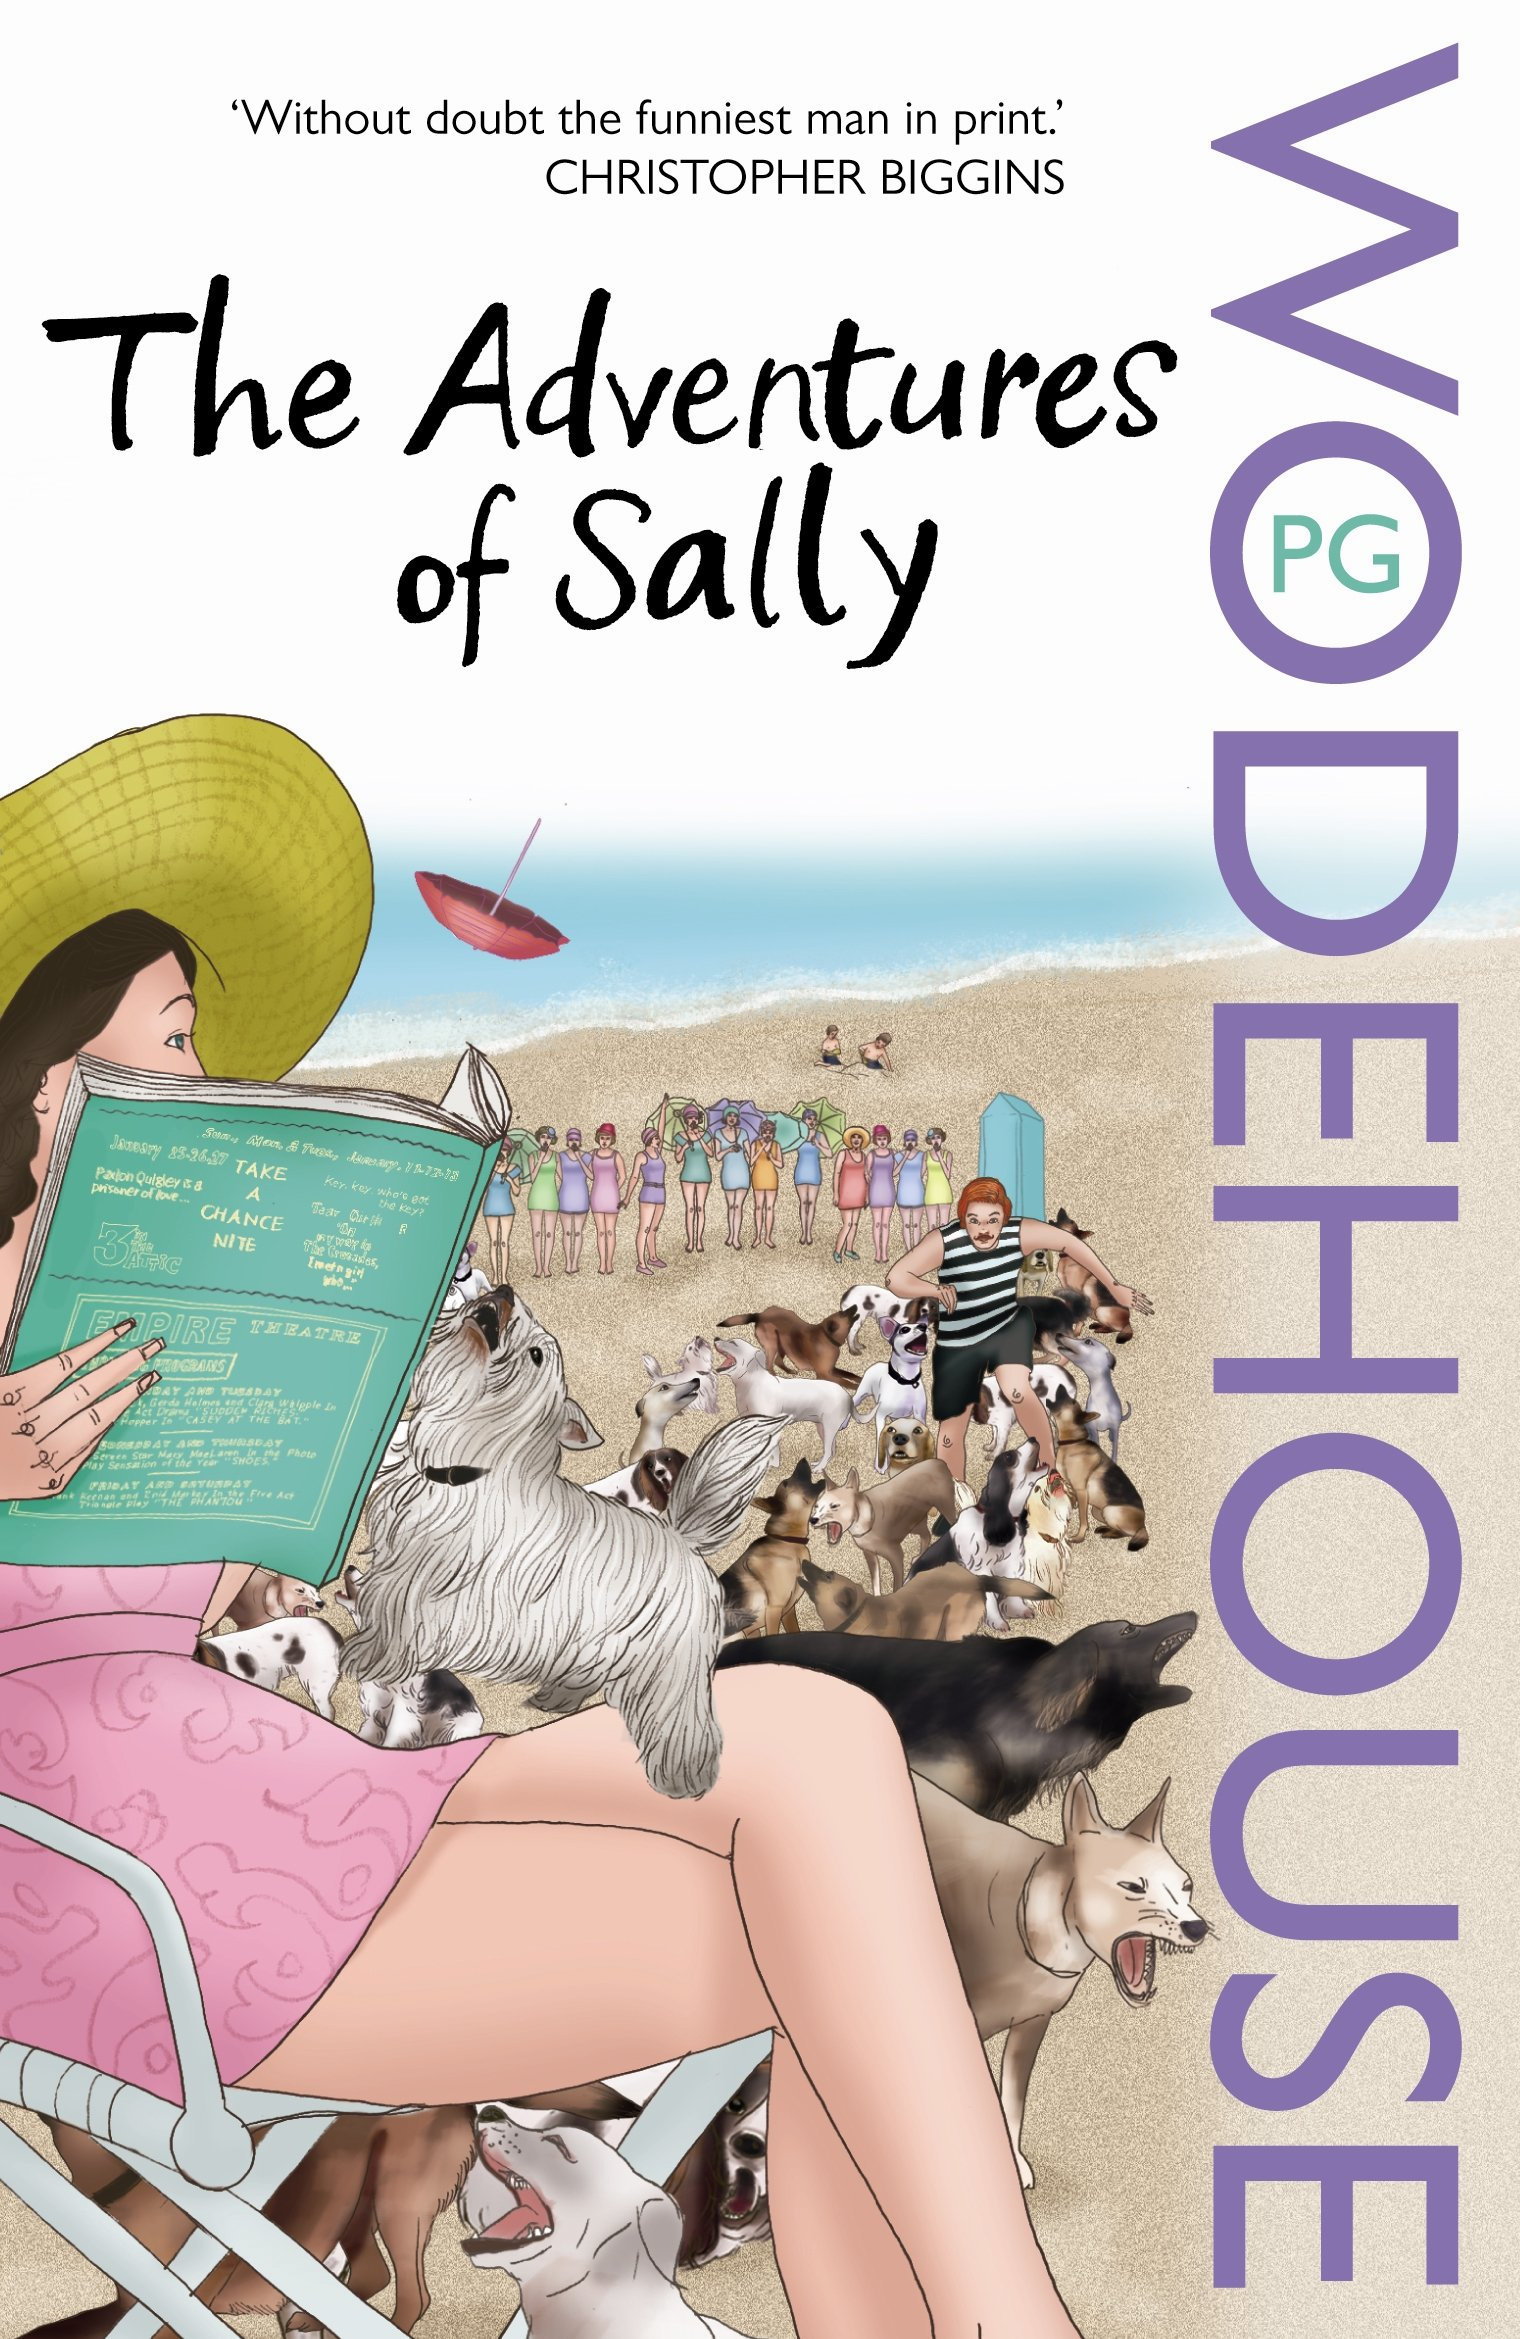 The Adventures of Sally - Pelham Grenville Wodehouse